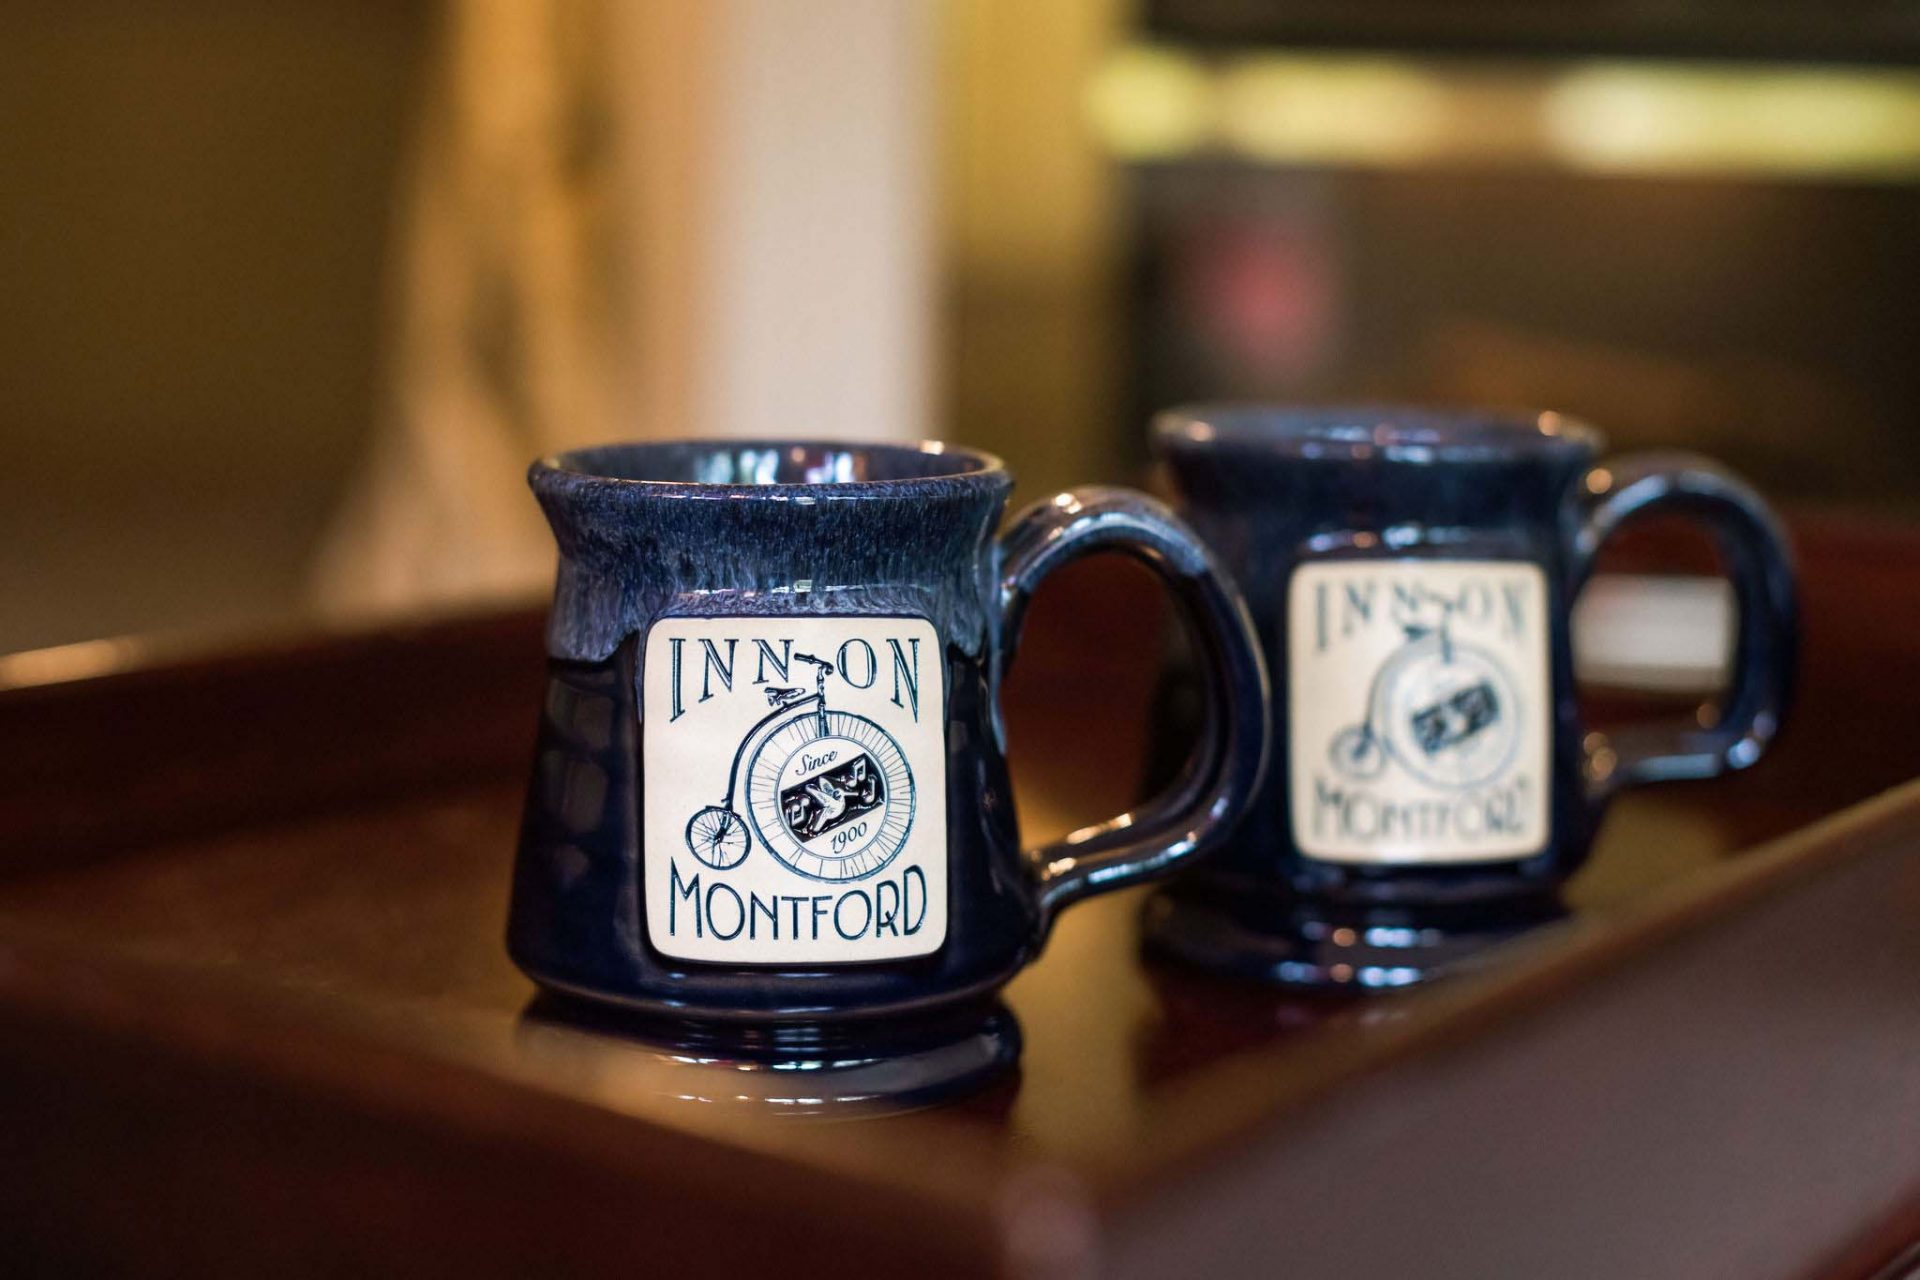 A cloesup of two dark blue clay mugs with the Inn on Montford logo.